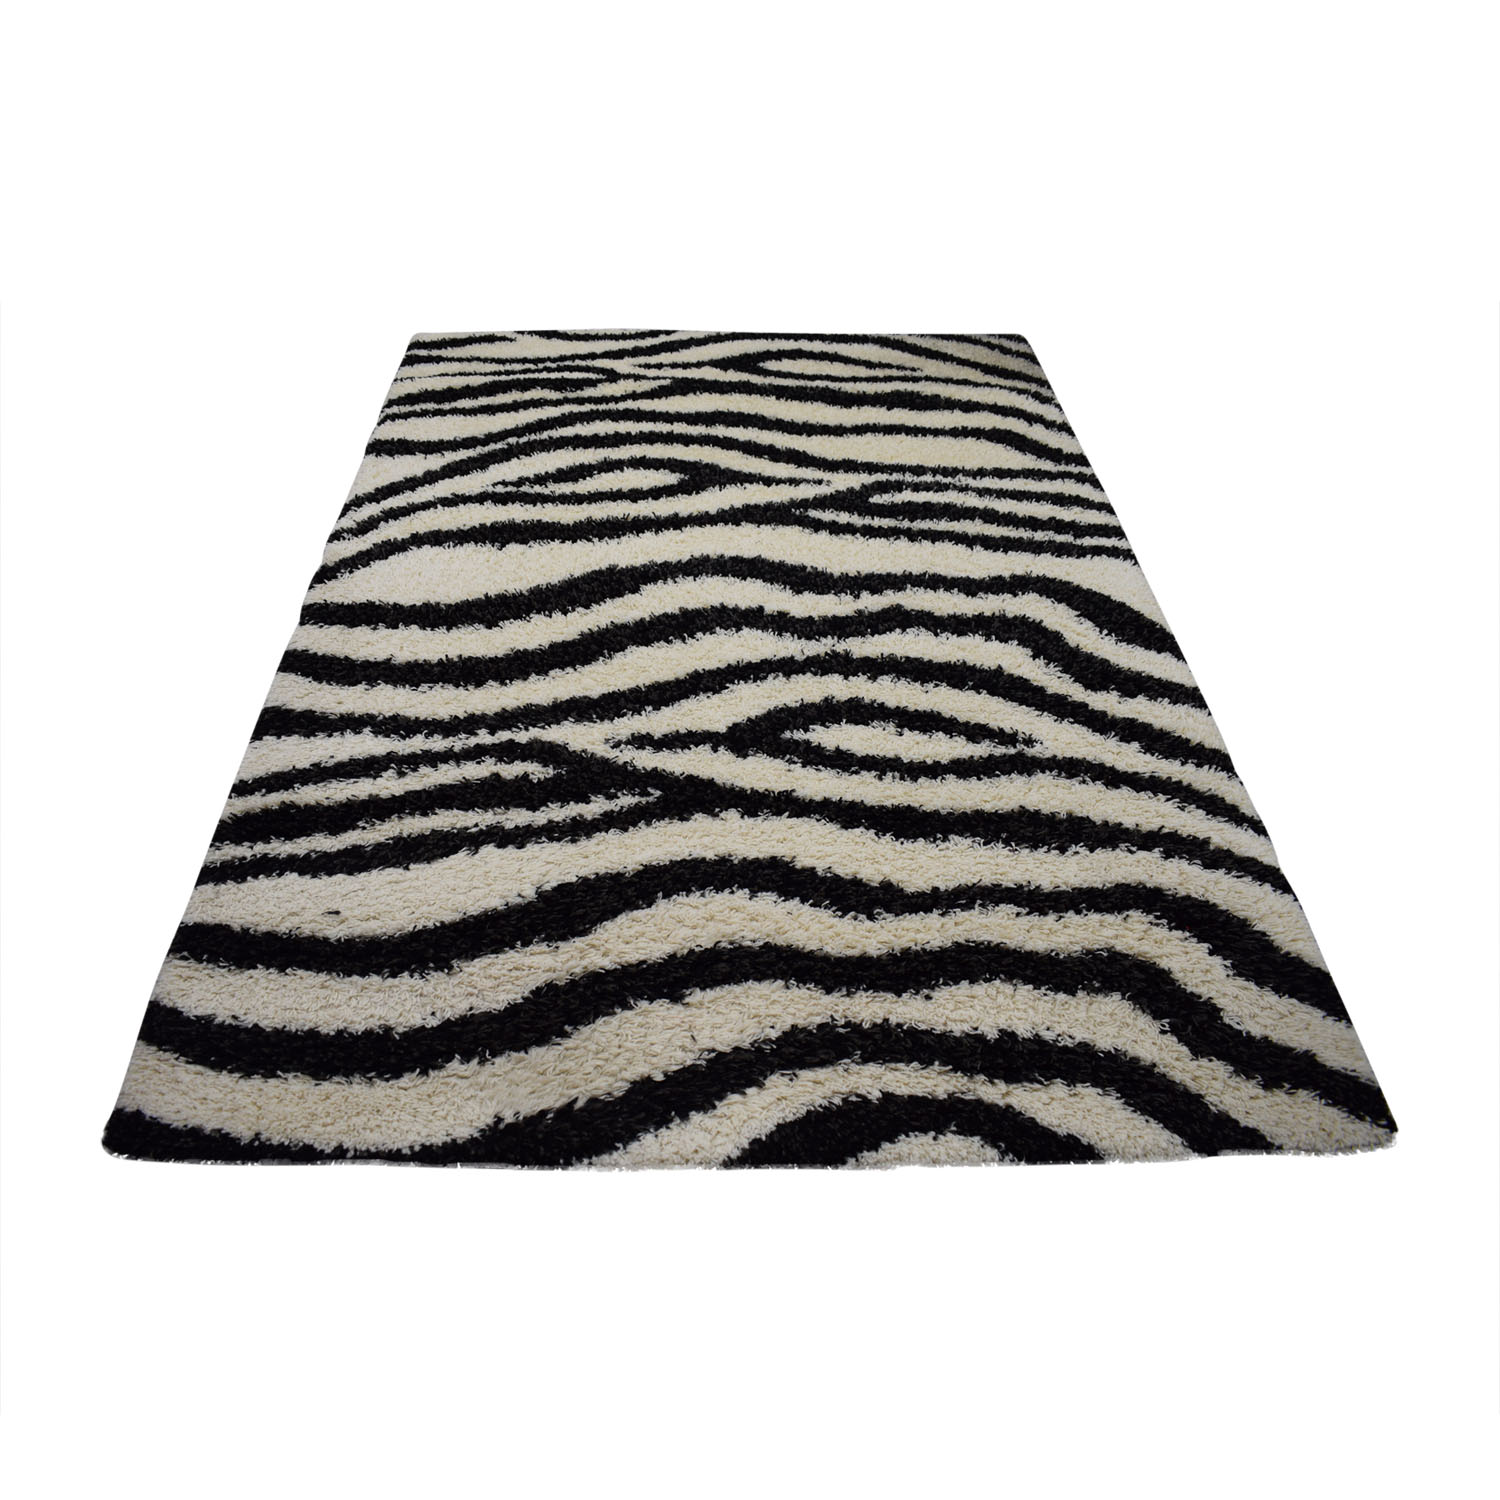 rug english accessories horse zebra fly eczema bucas sweet rugs itch